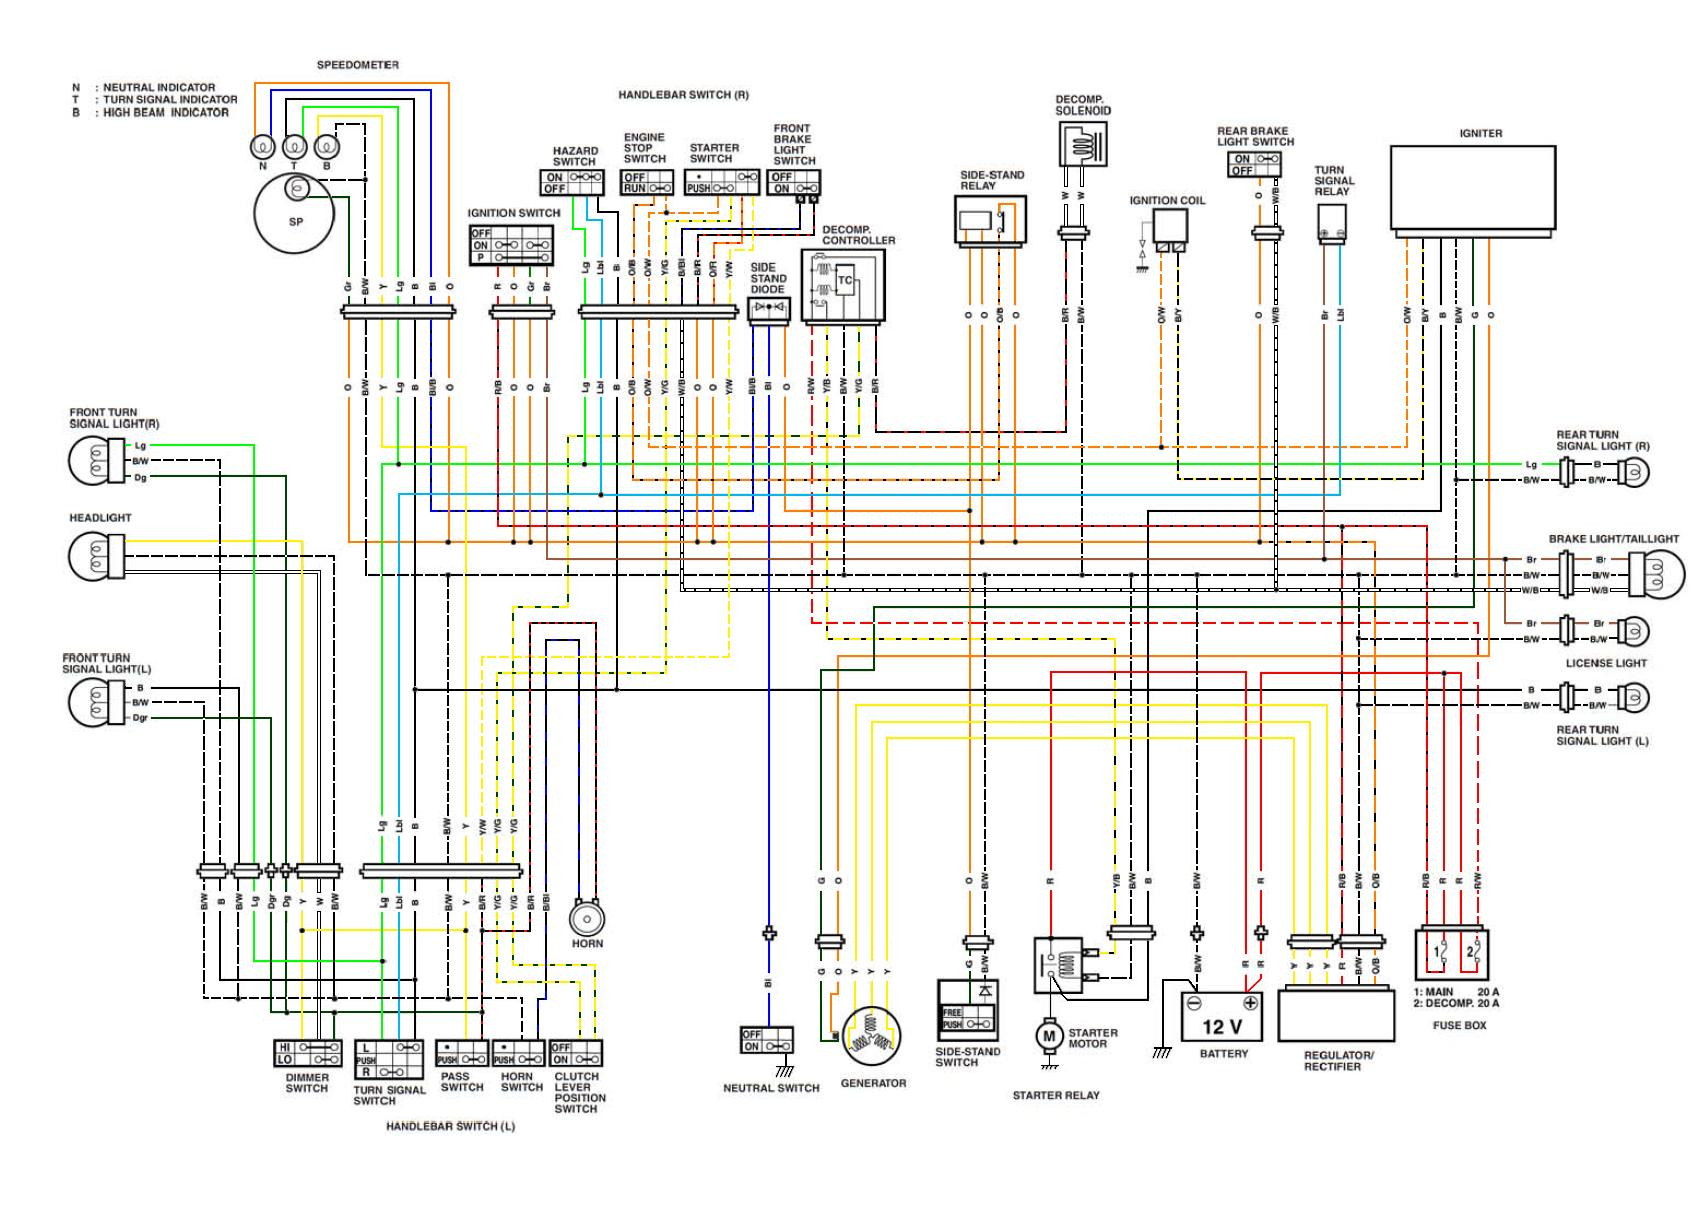 2007 Harley Coil Wiring Diagram - Great Installation Of Wiring Diagram • - Harley Davidson Coil Wiring Diagram